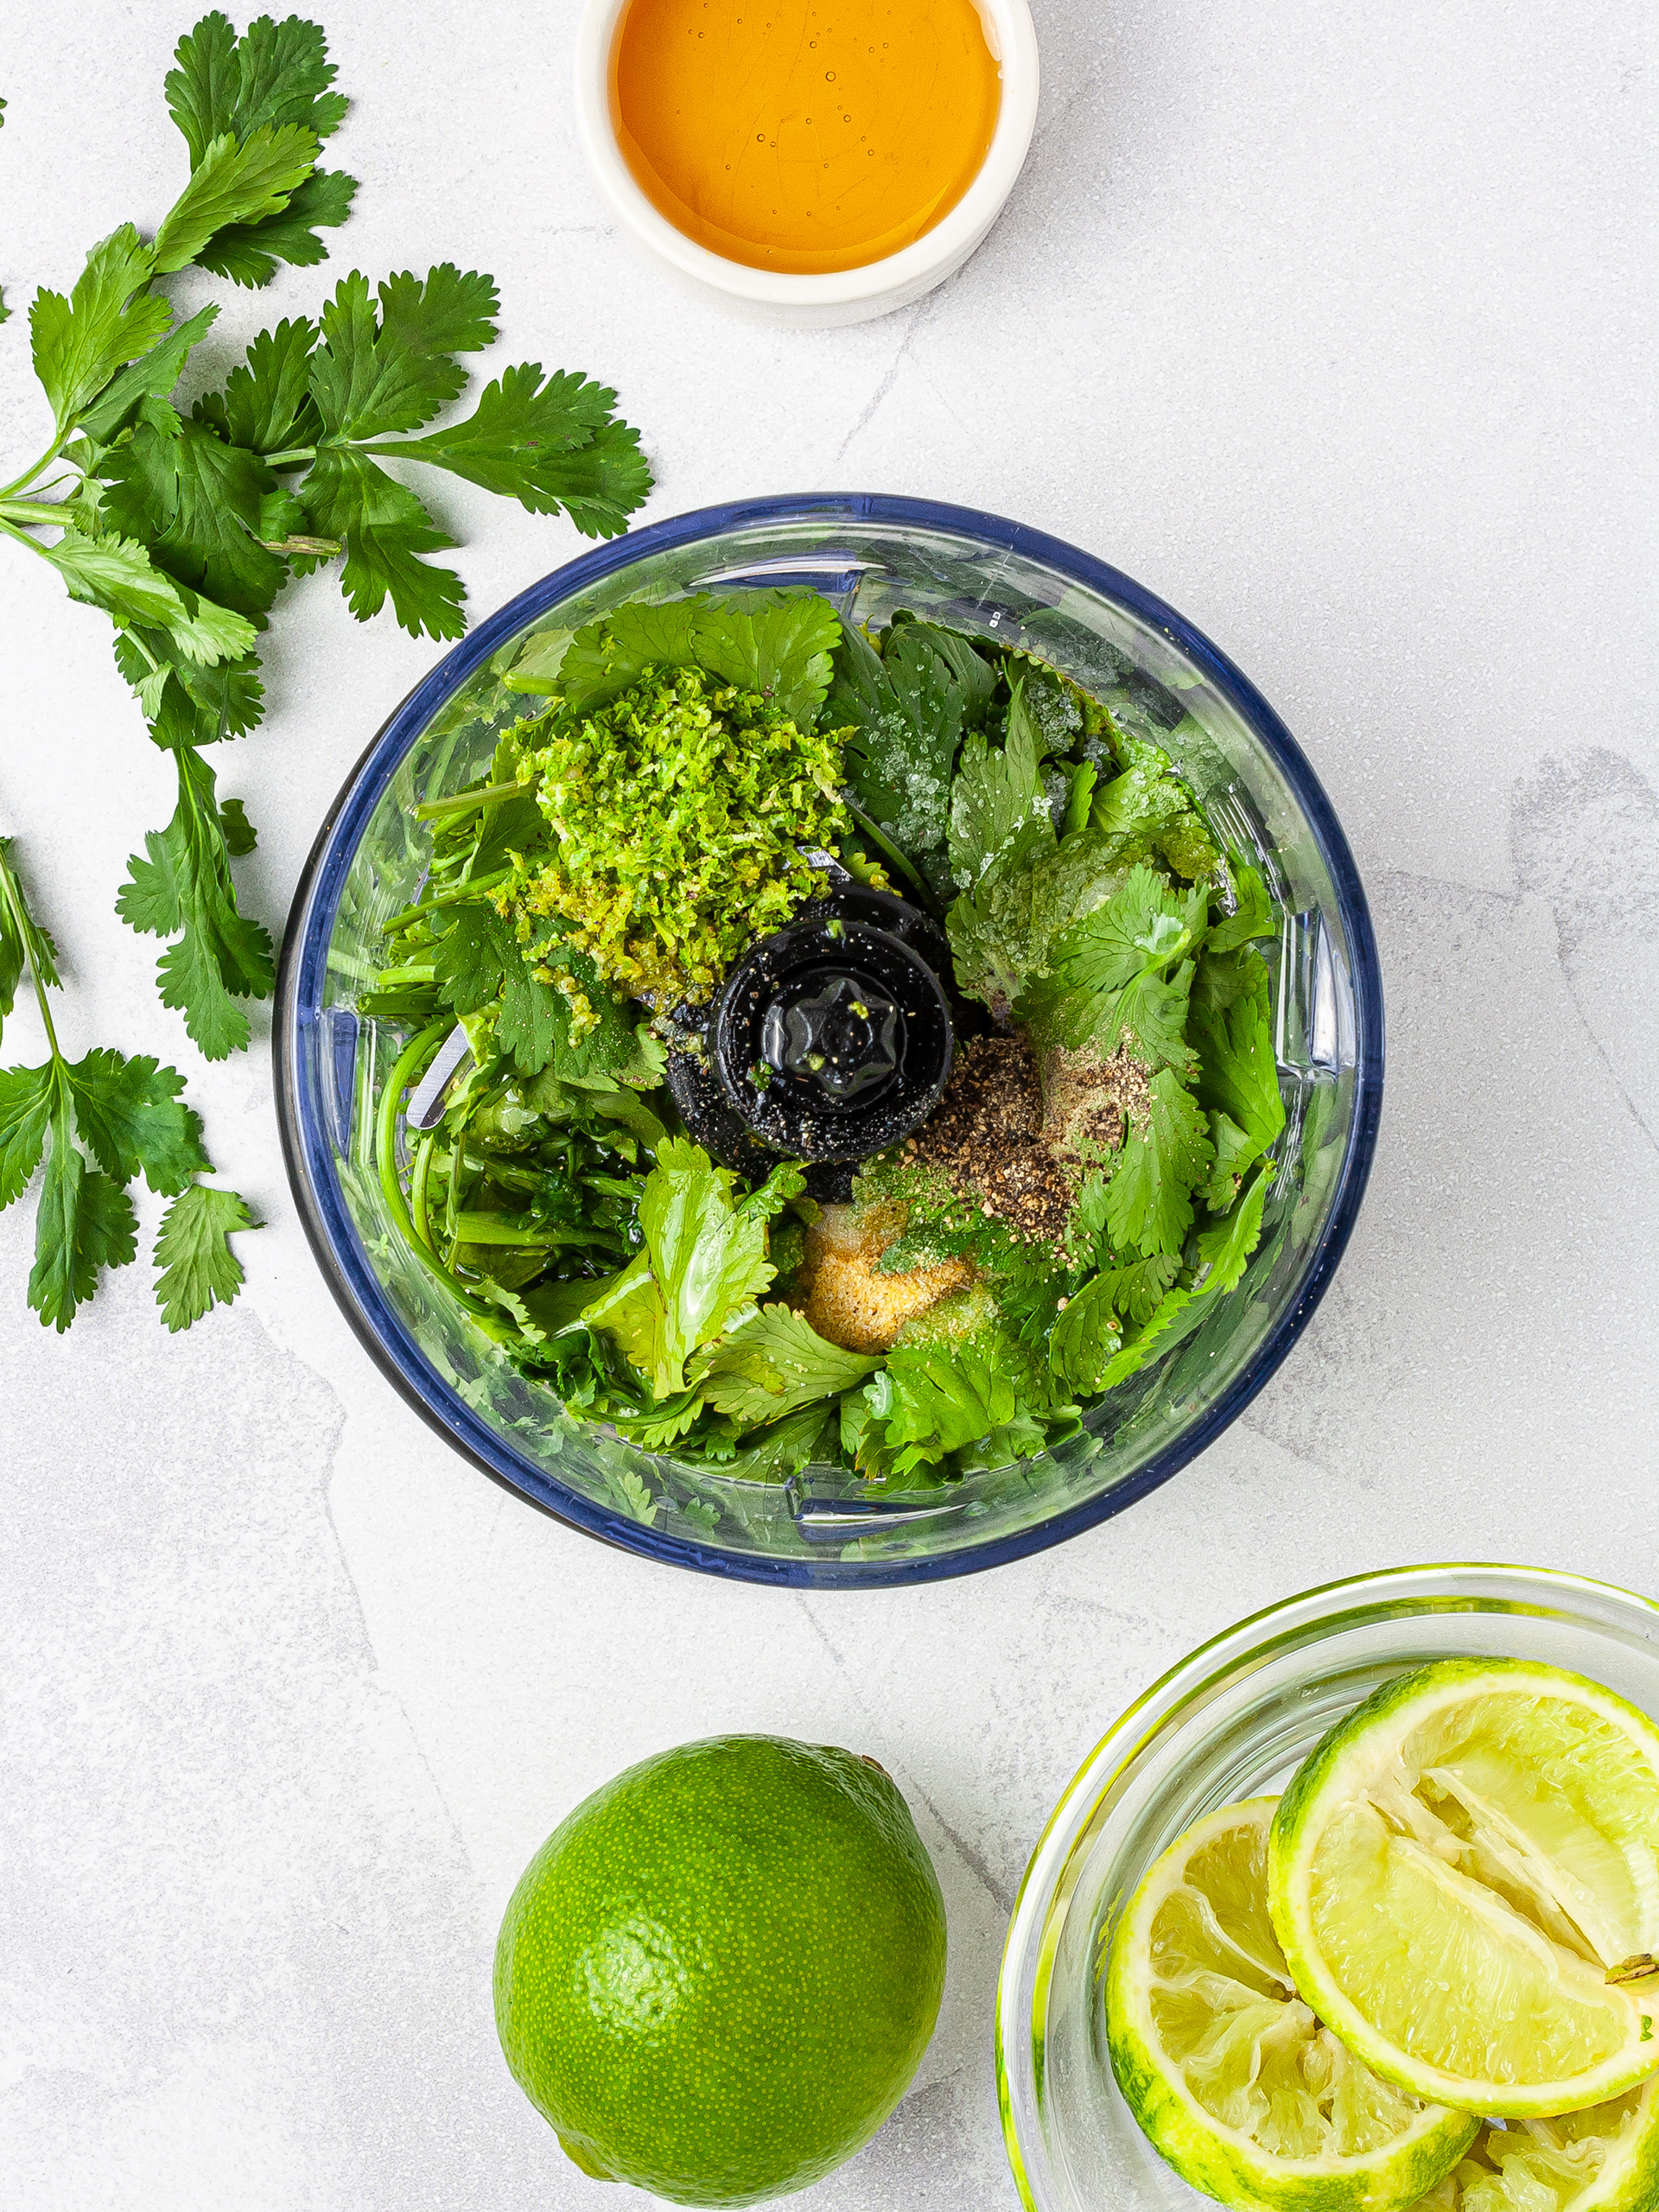 Cilantro, lime, and honey in a food processor to prepare the dressing.